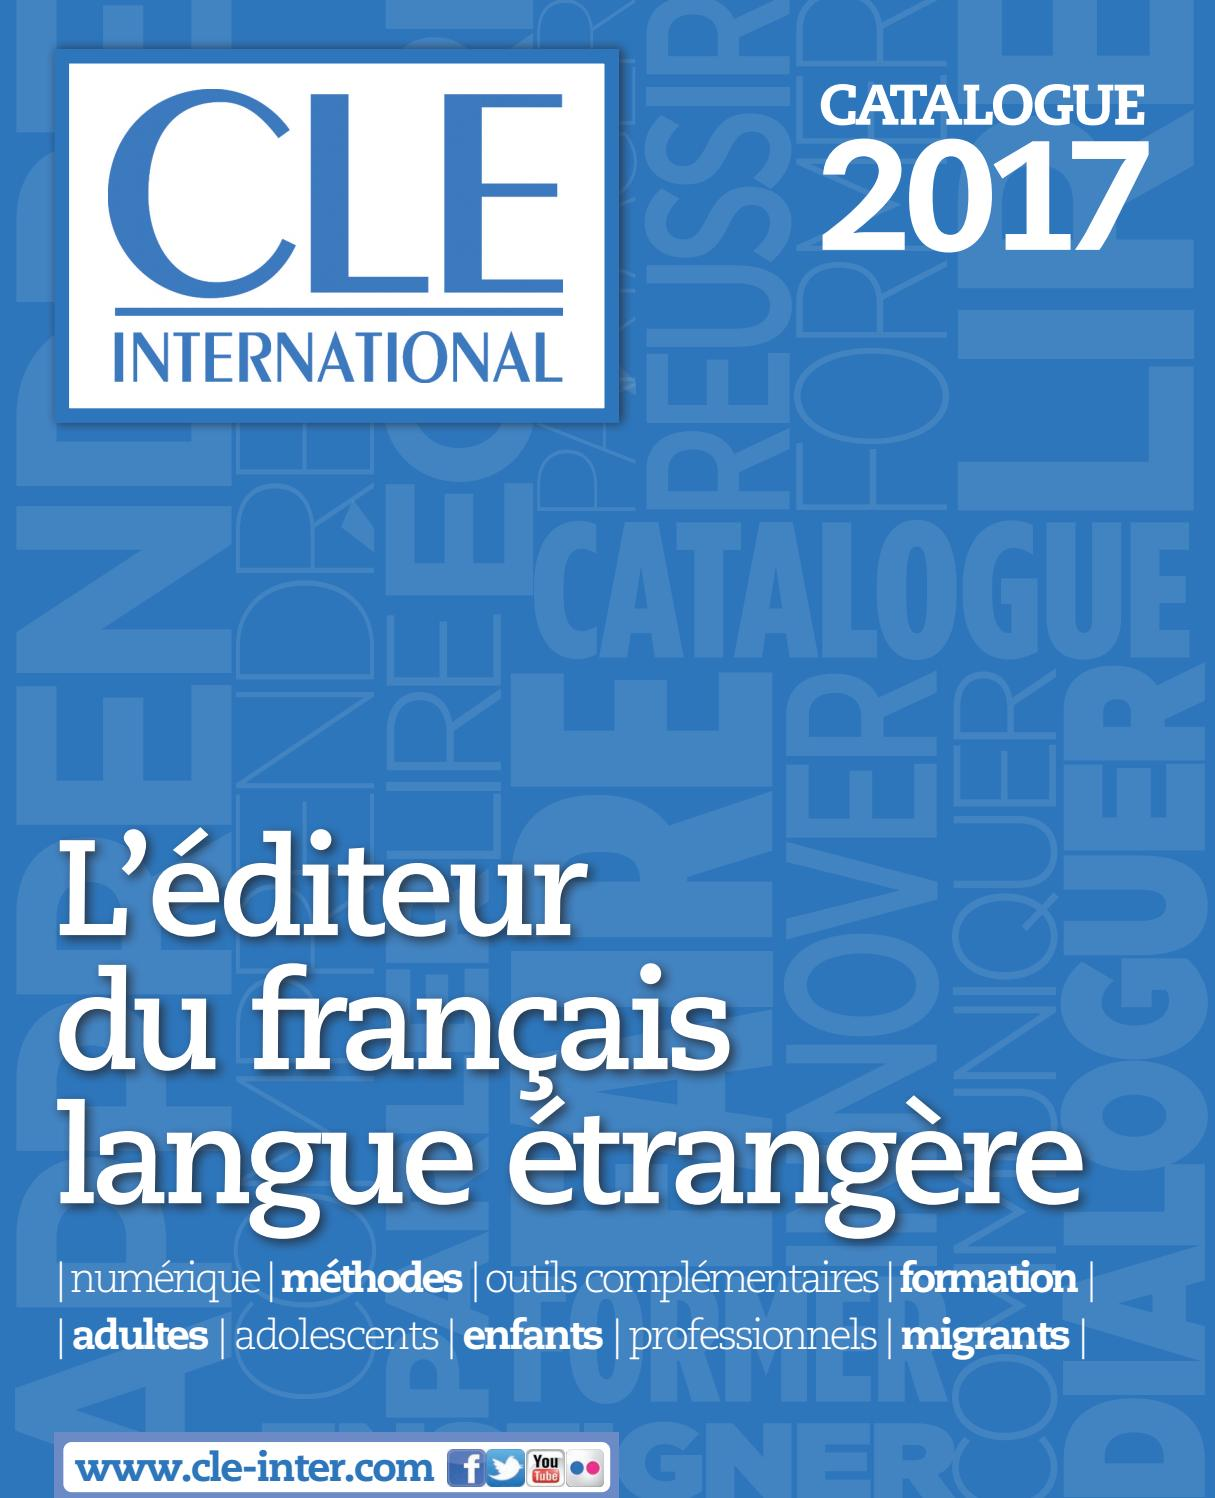 catalogue 2017 cle international by cle international